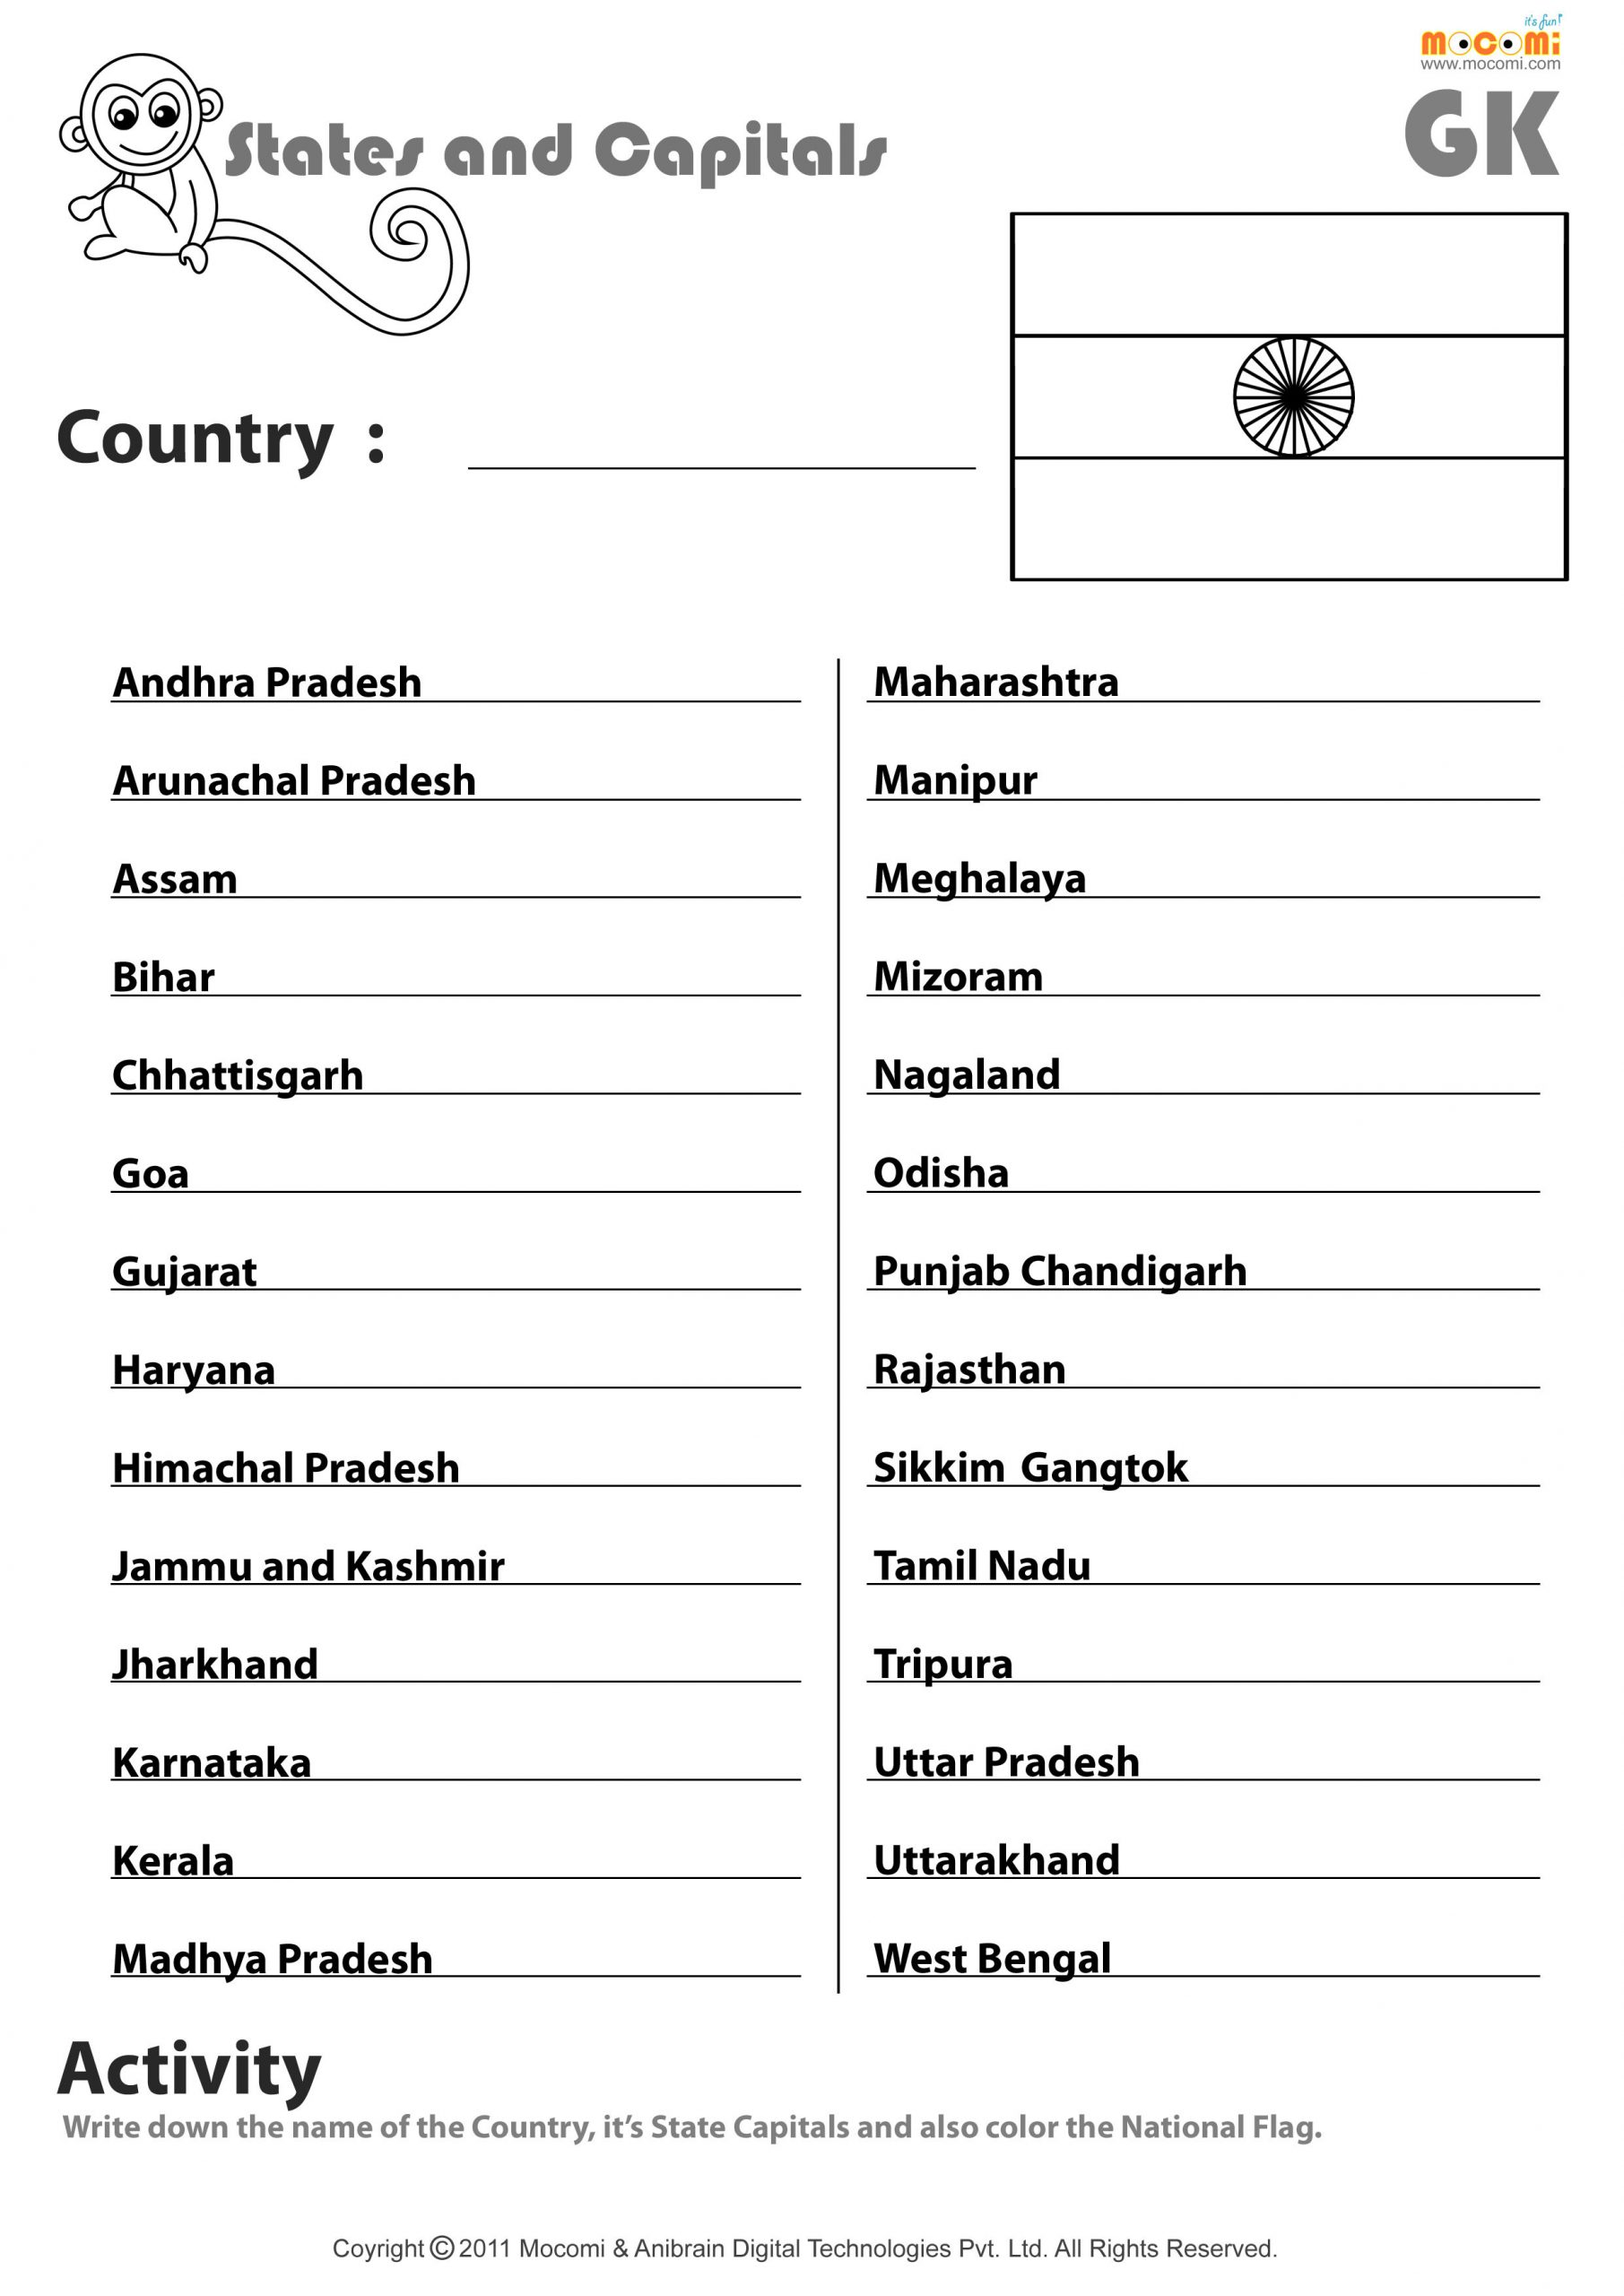 State Capitals Quiz Printable Indian States and their Capitals English Worksheets for